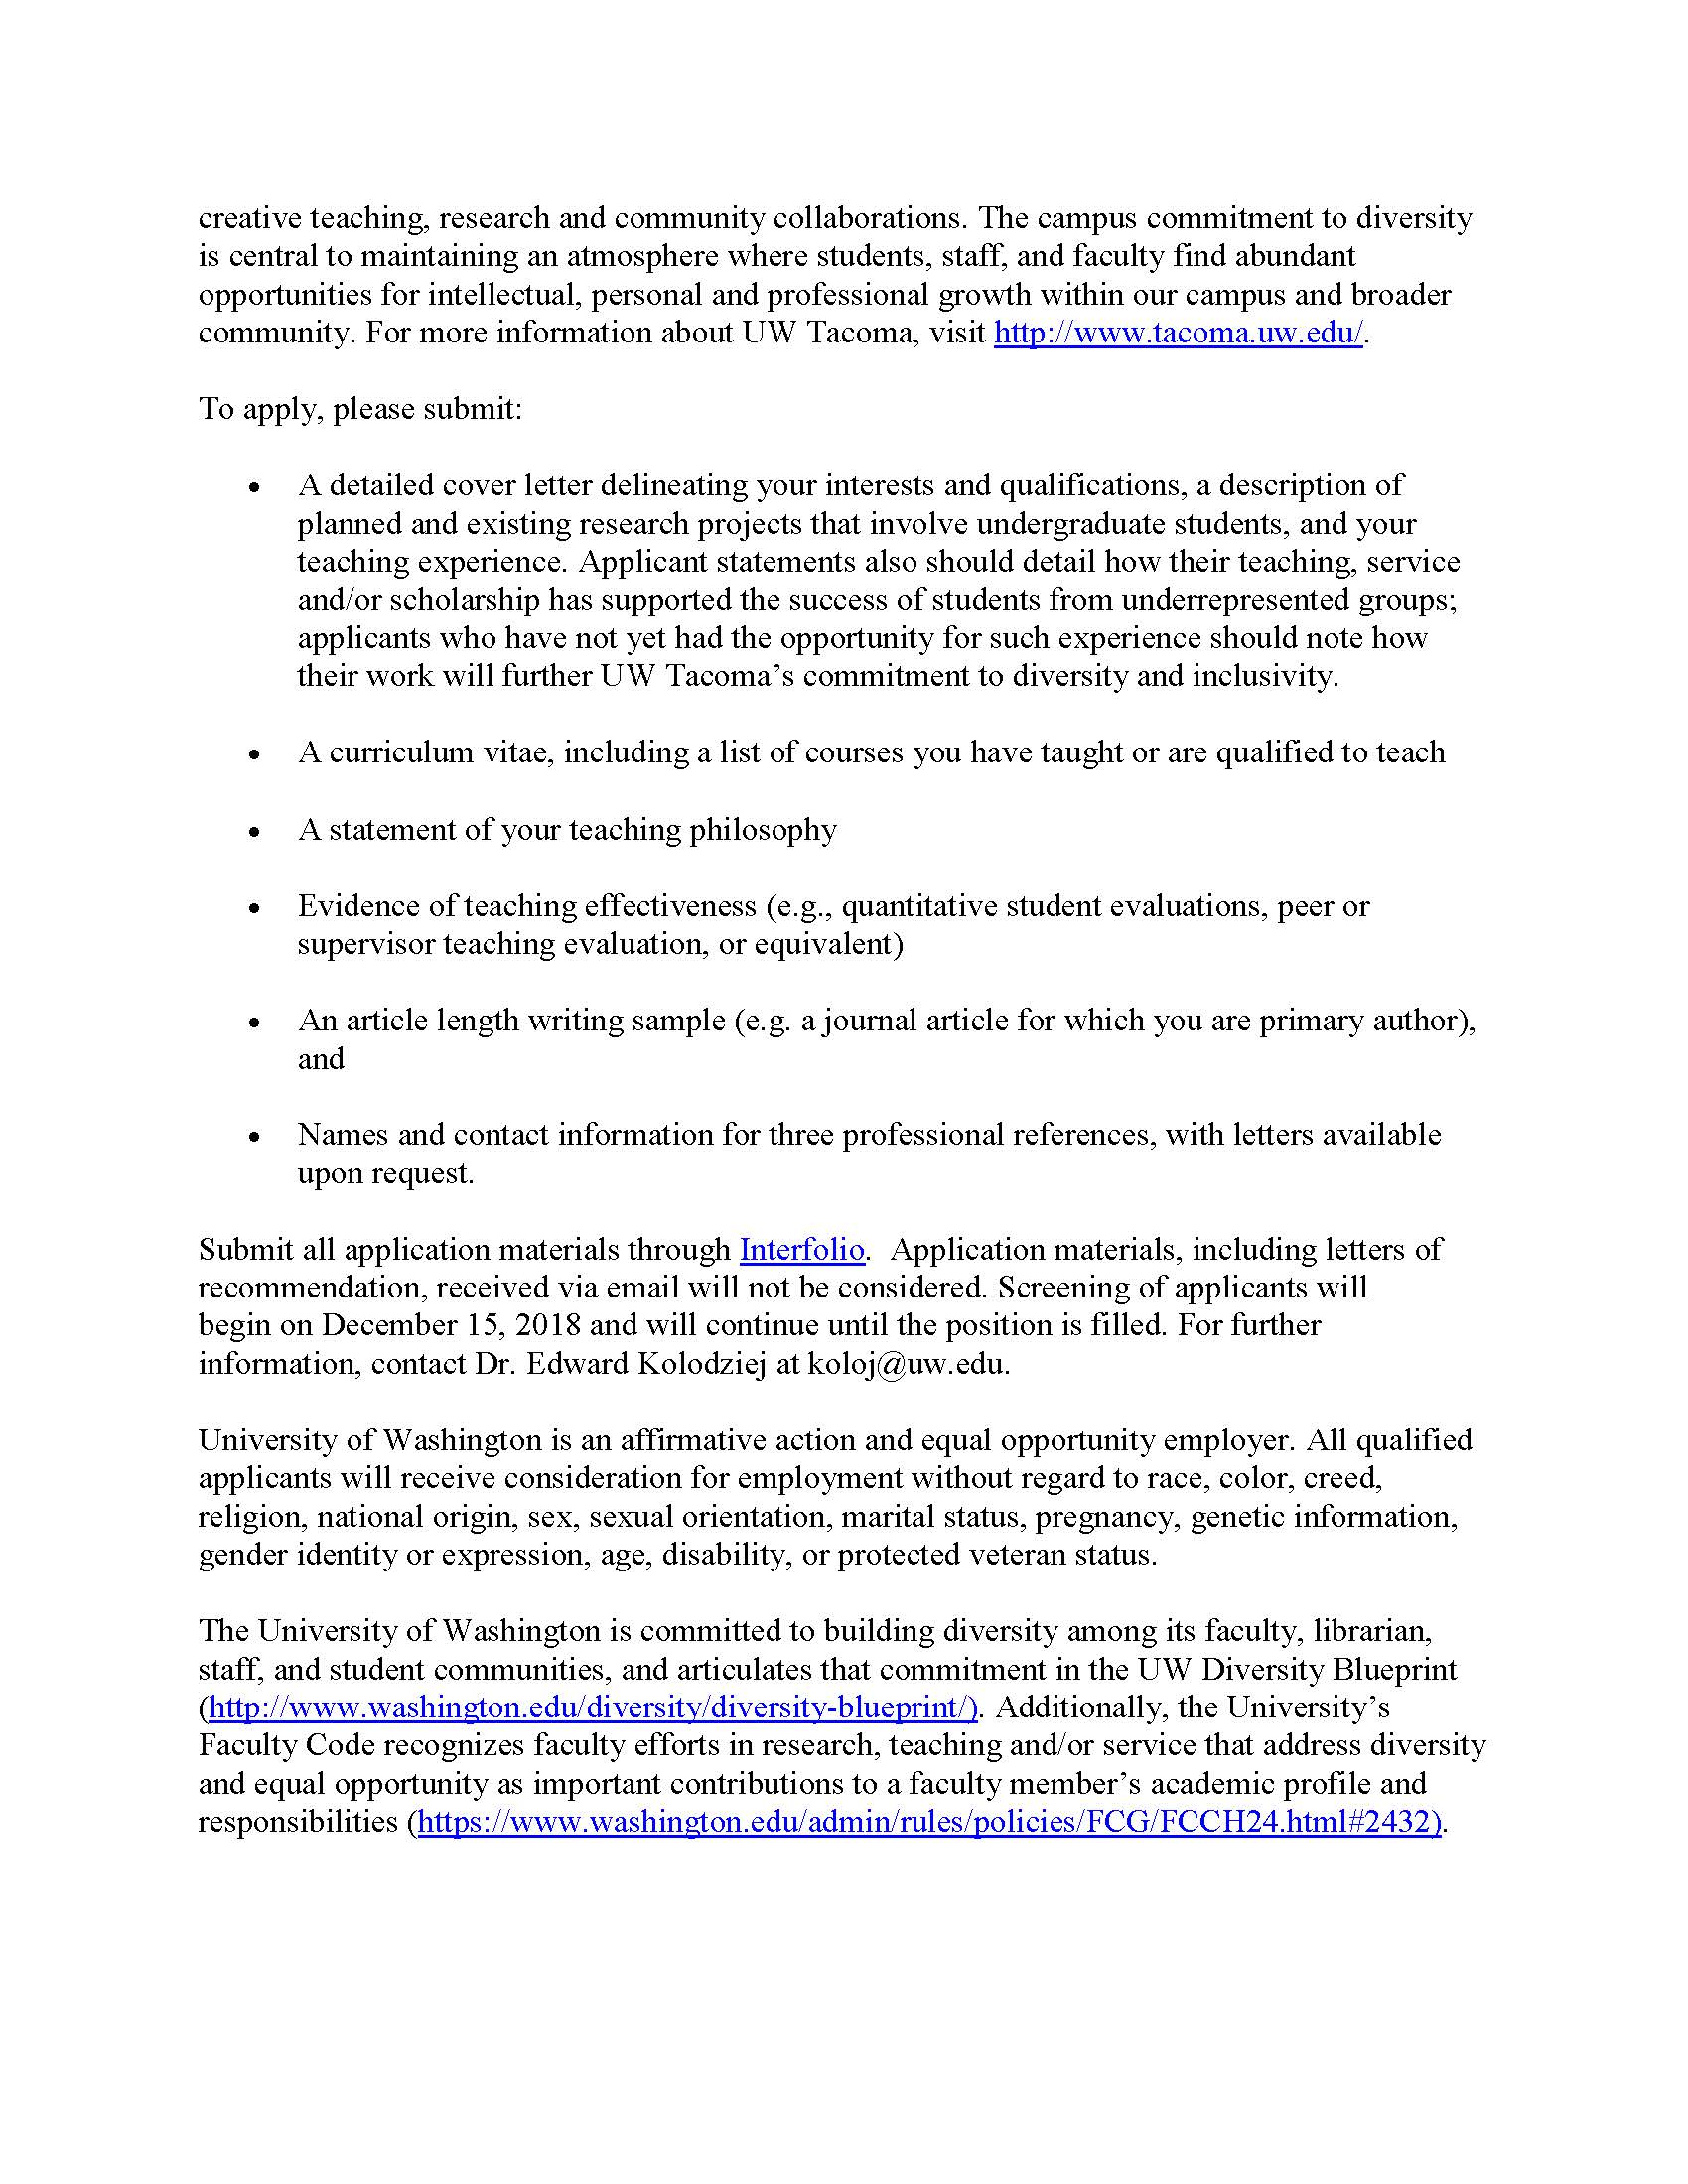 UWT - Assistant Professor in Organic Chemistry - The Erlenmeyer Flask